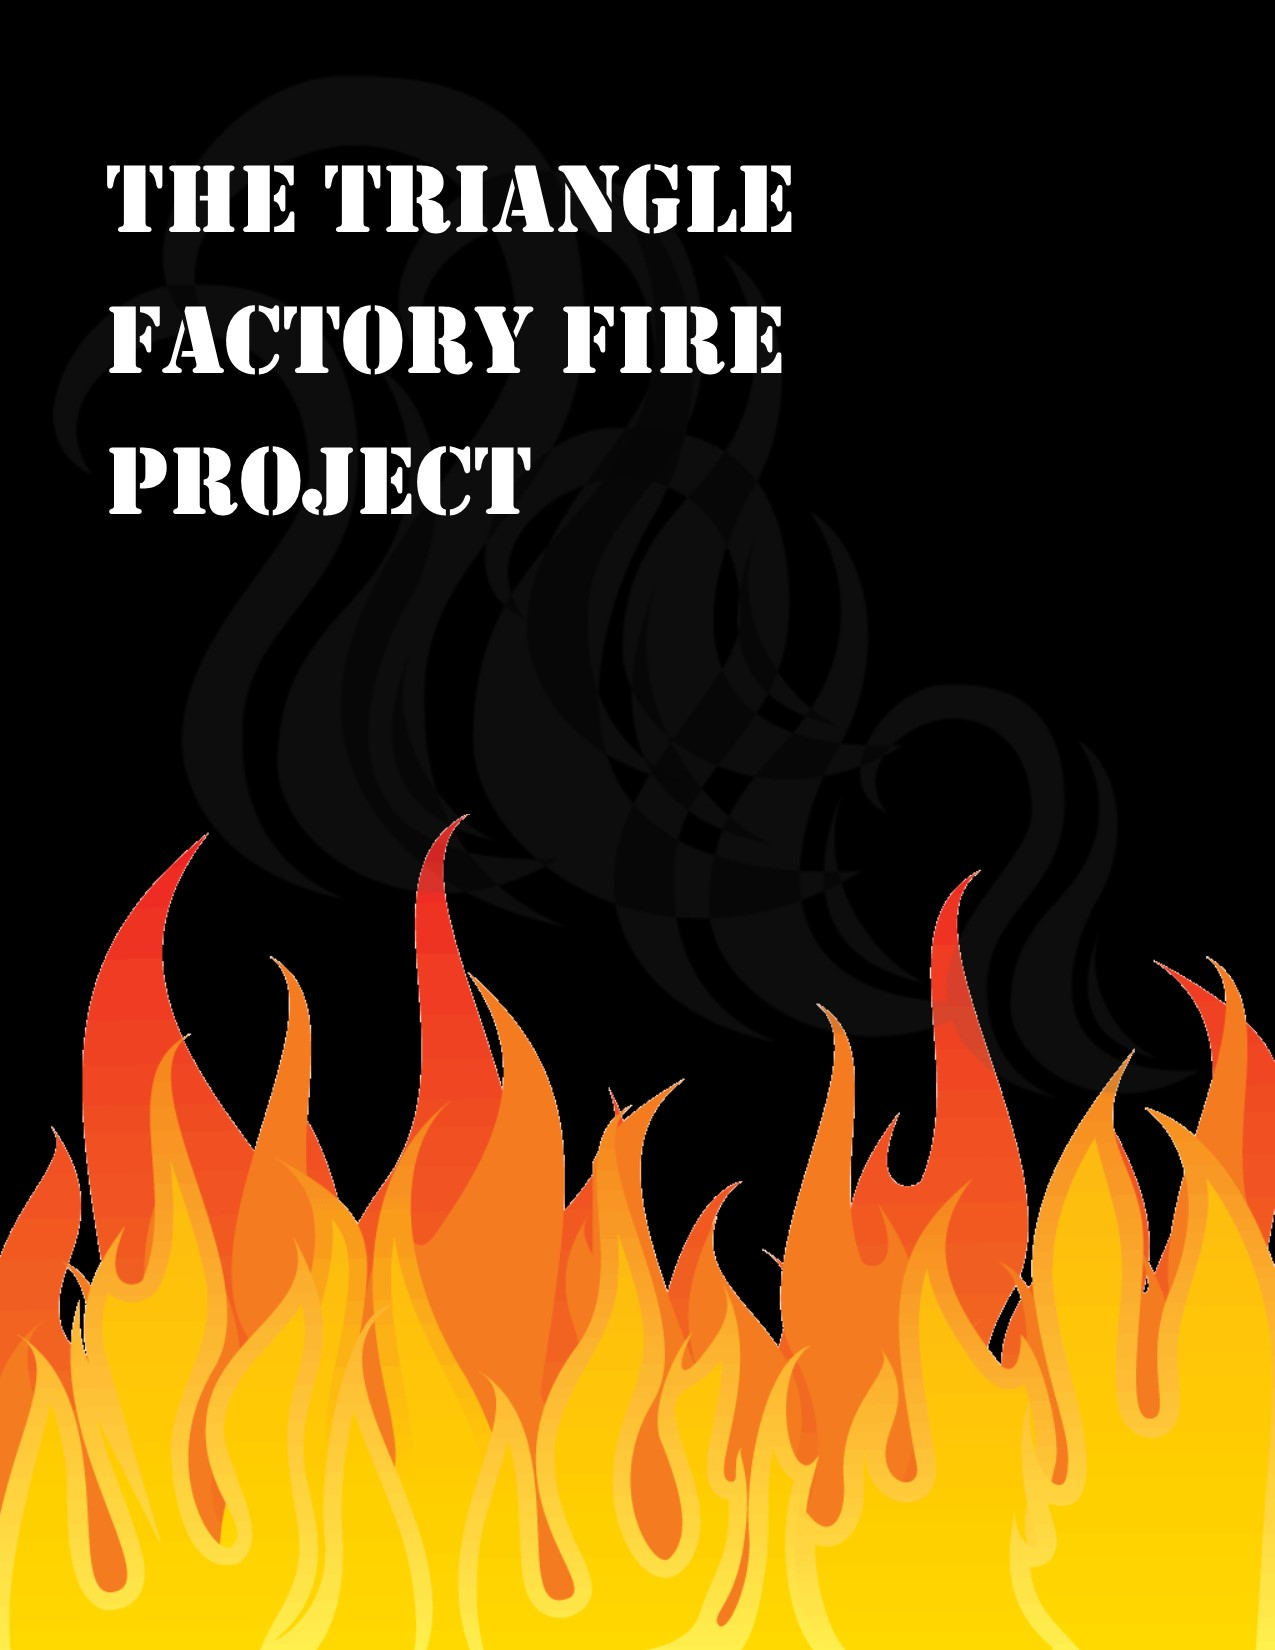 The Triangle Factory Fire Project Poster